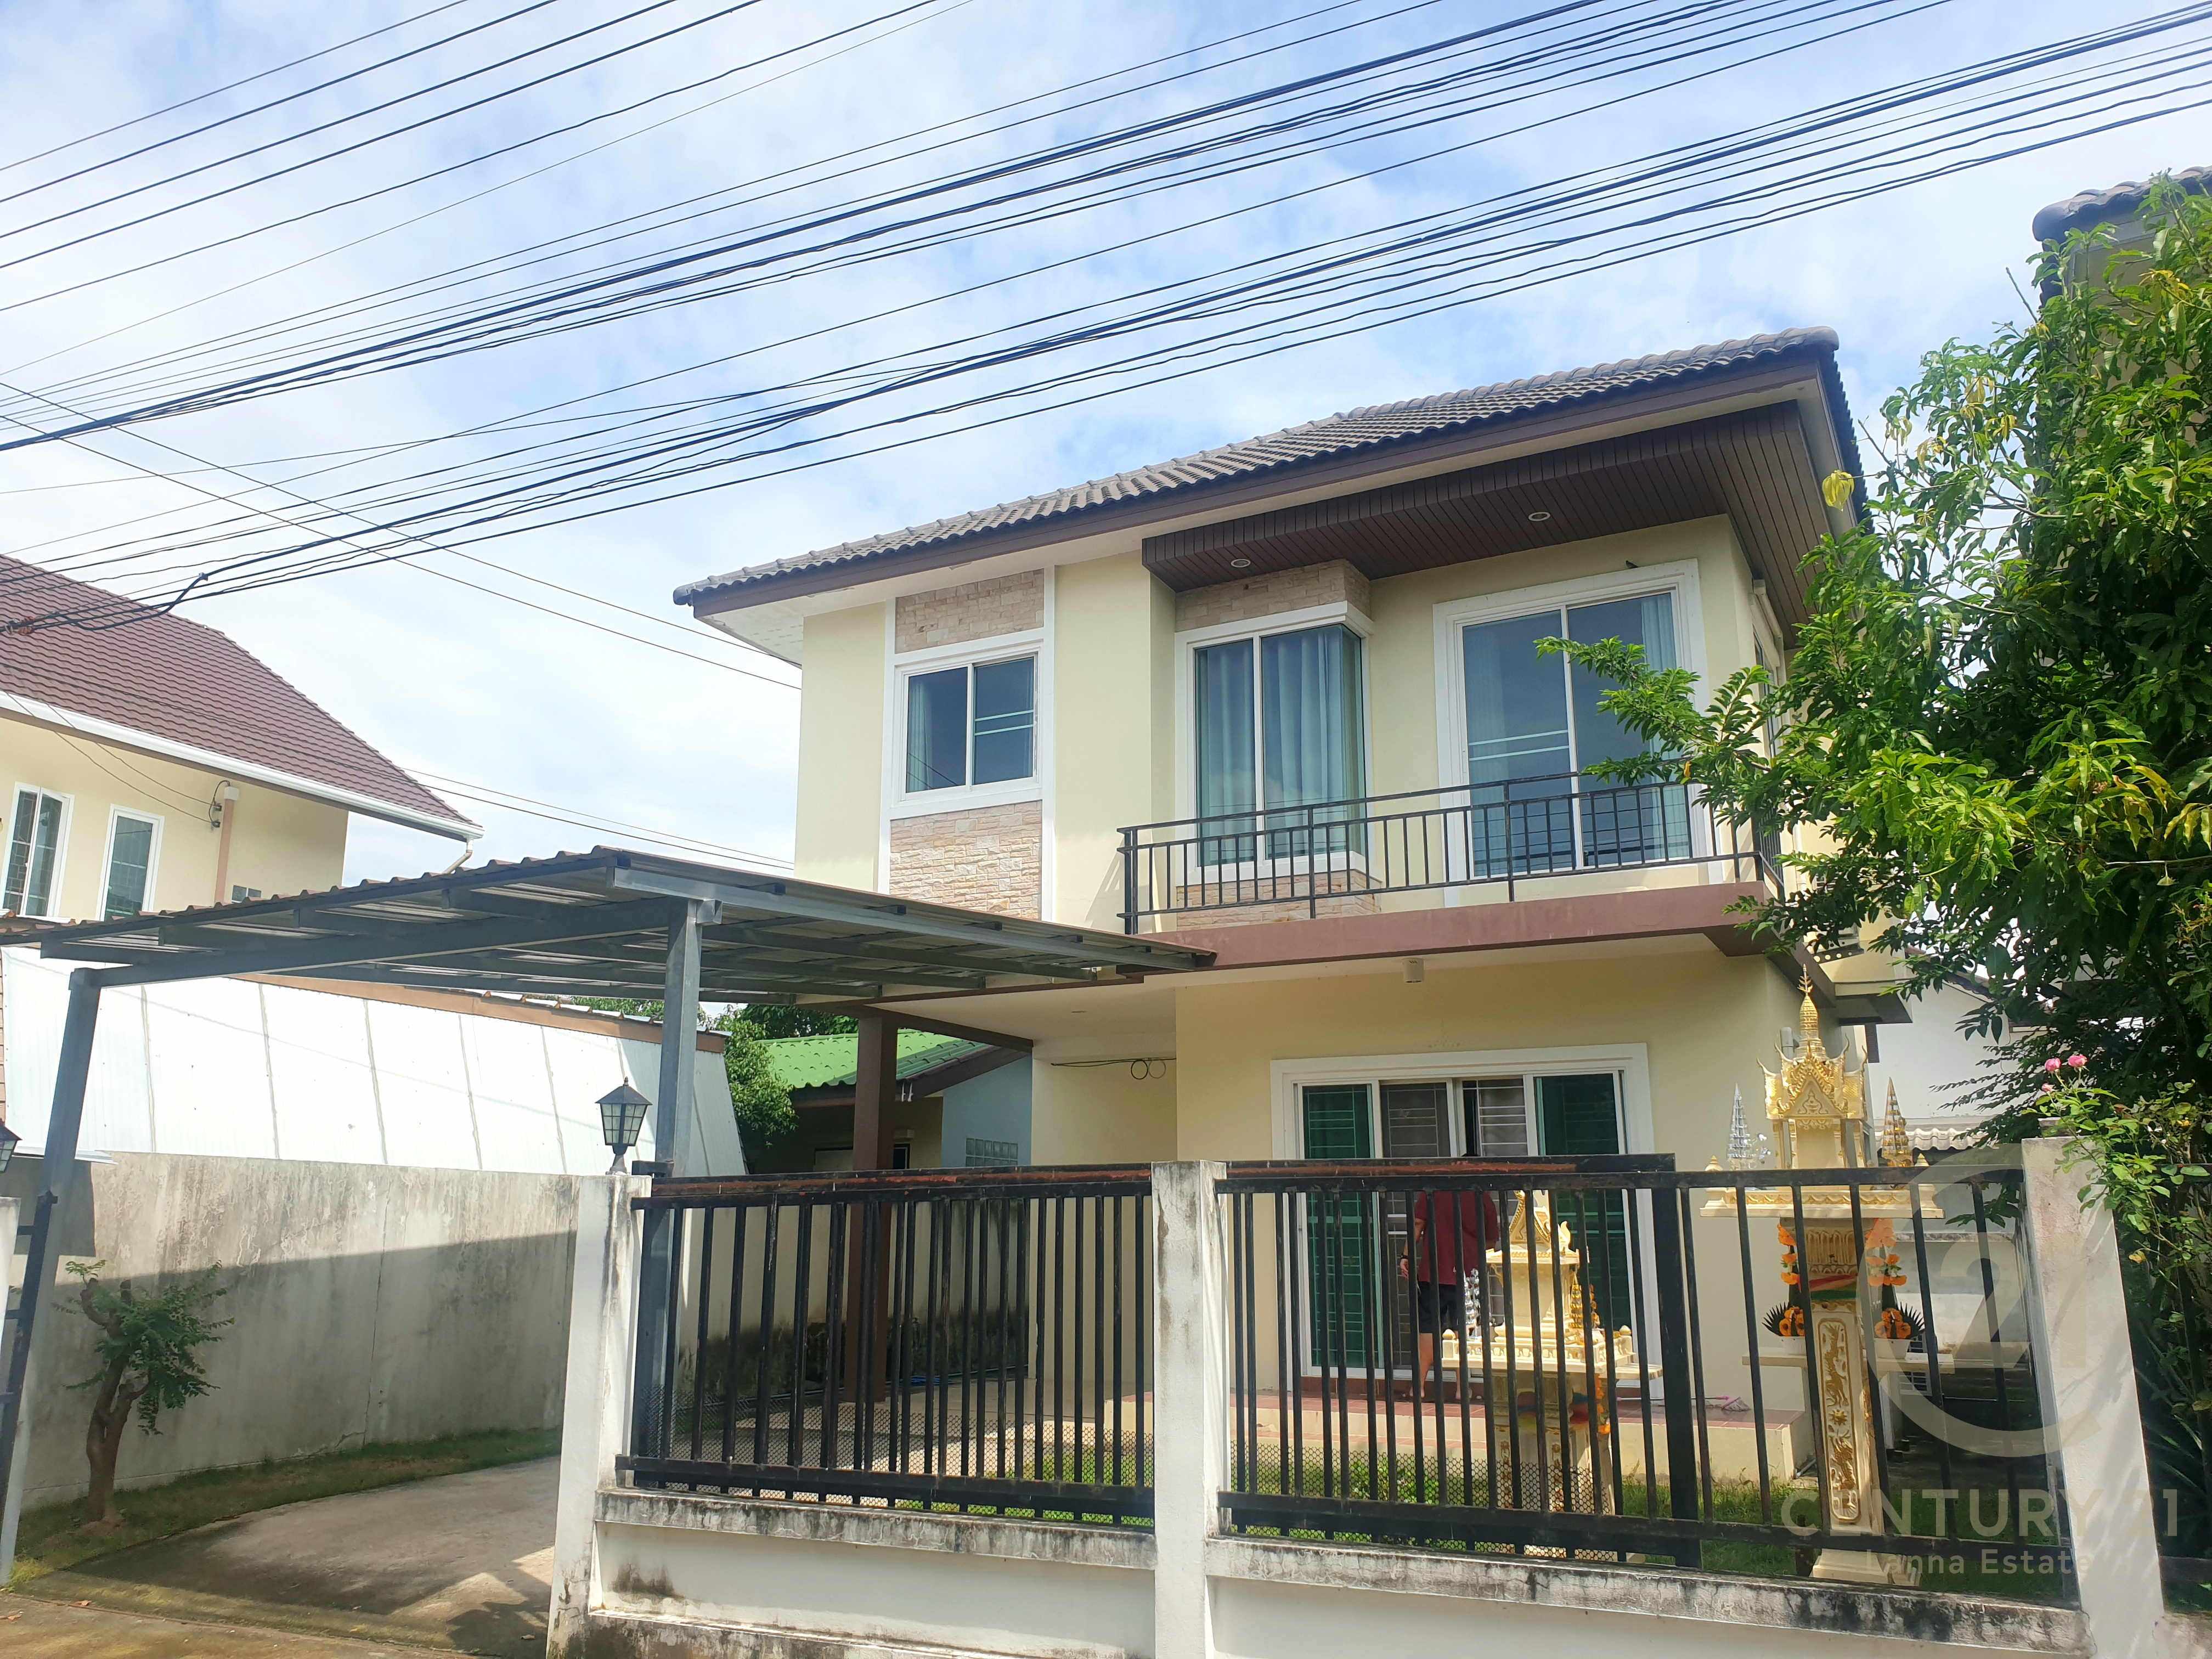 3 Bedroom House for Rent Sansai Chiang Mai